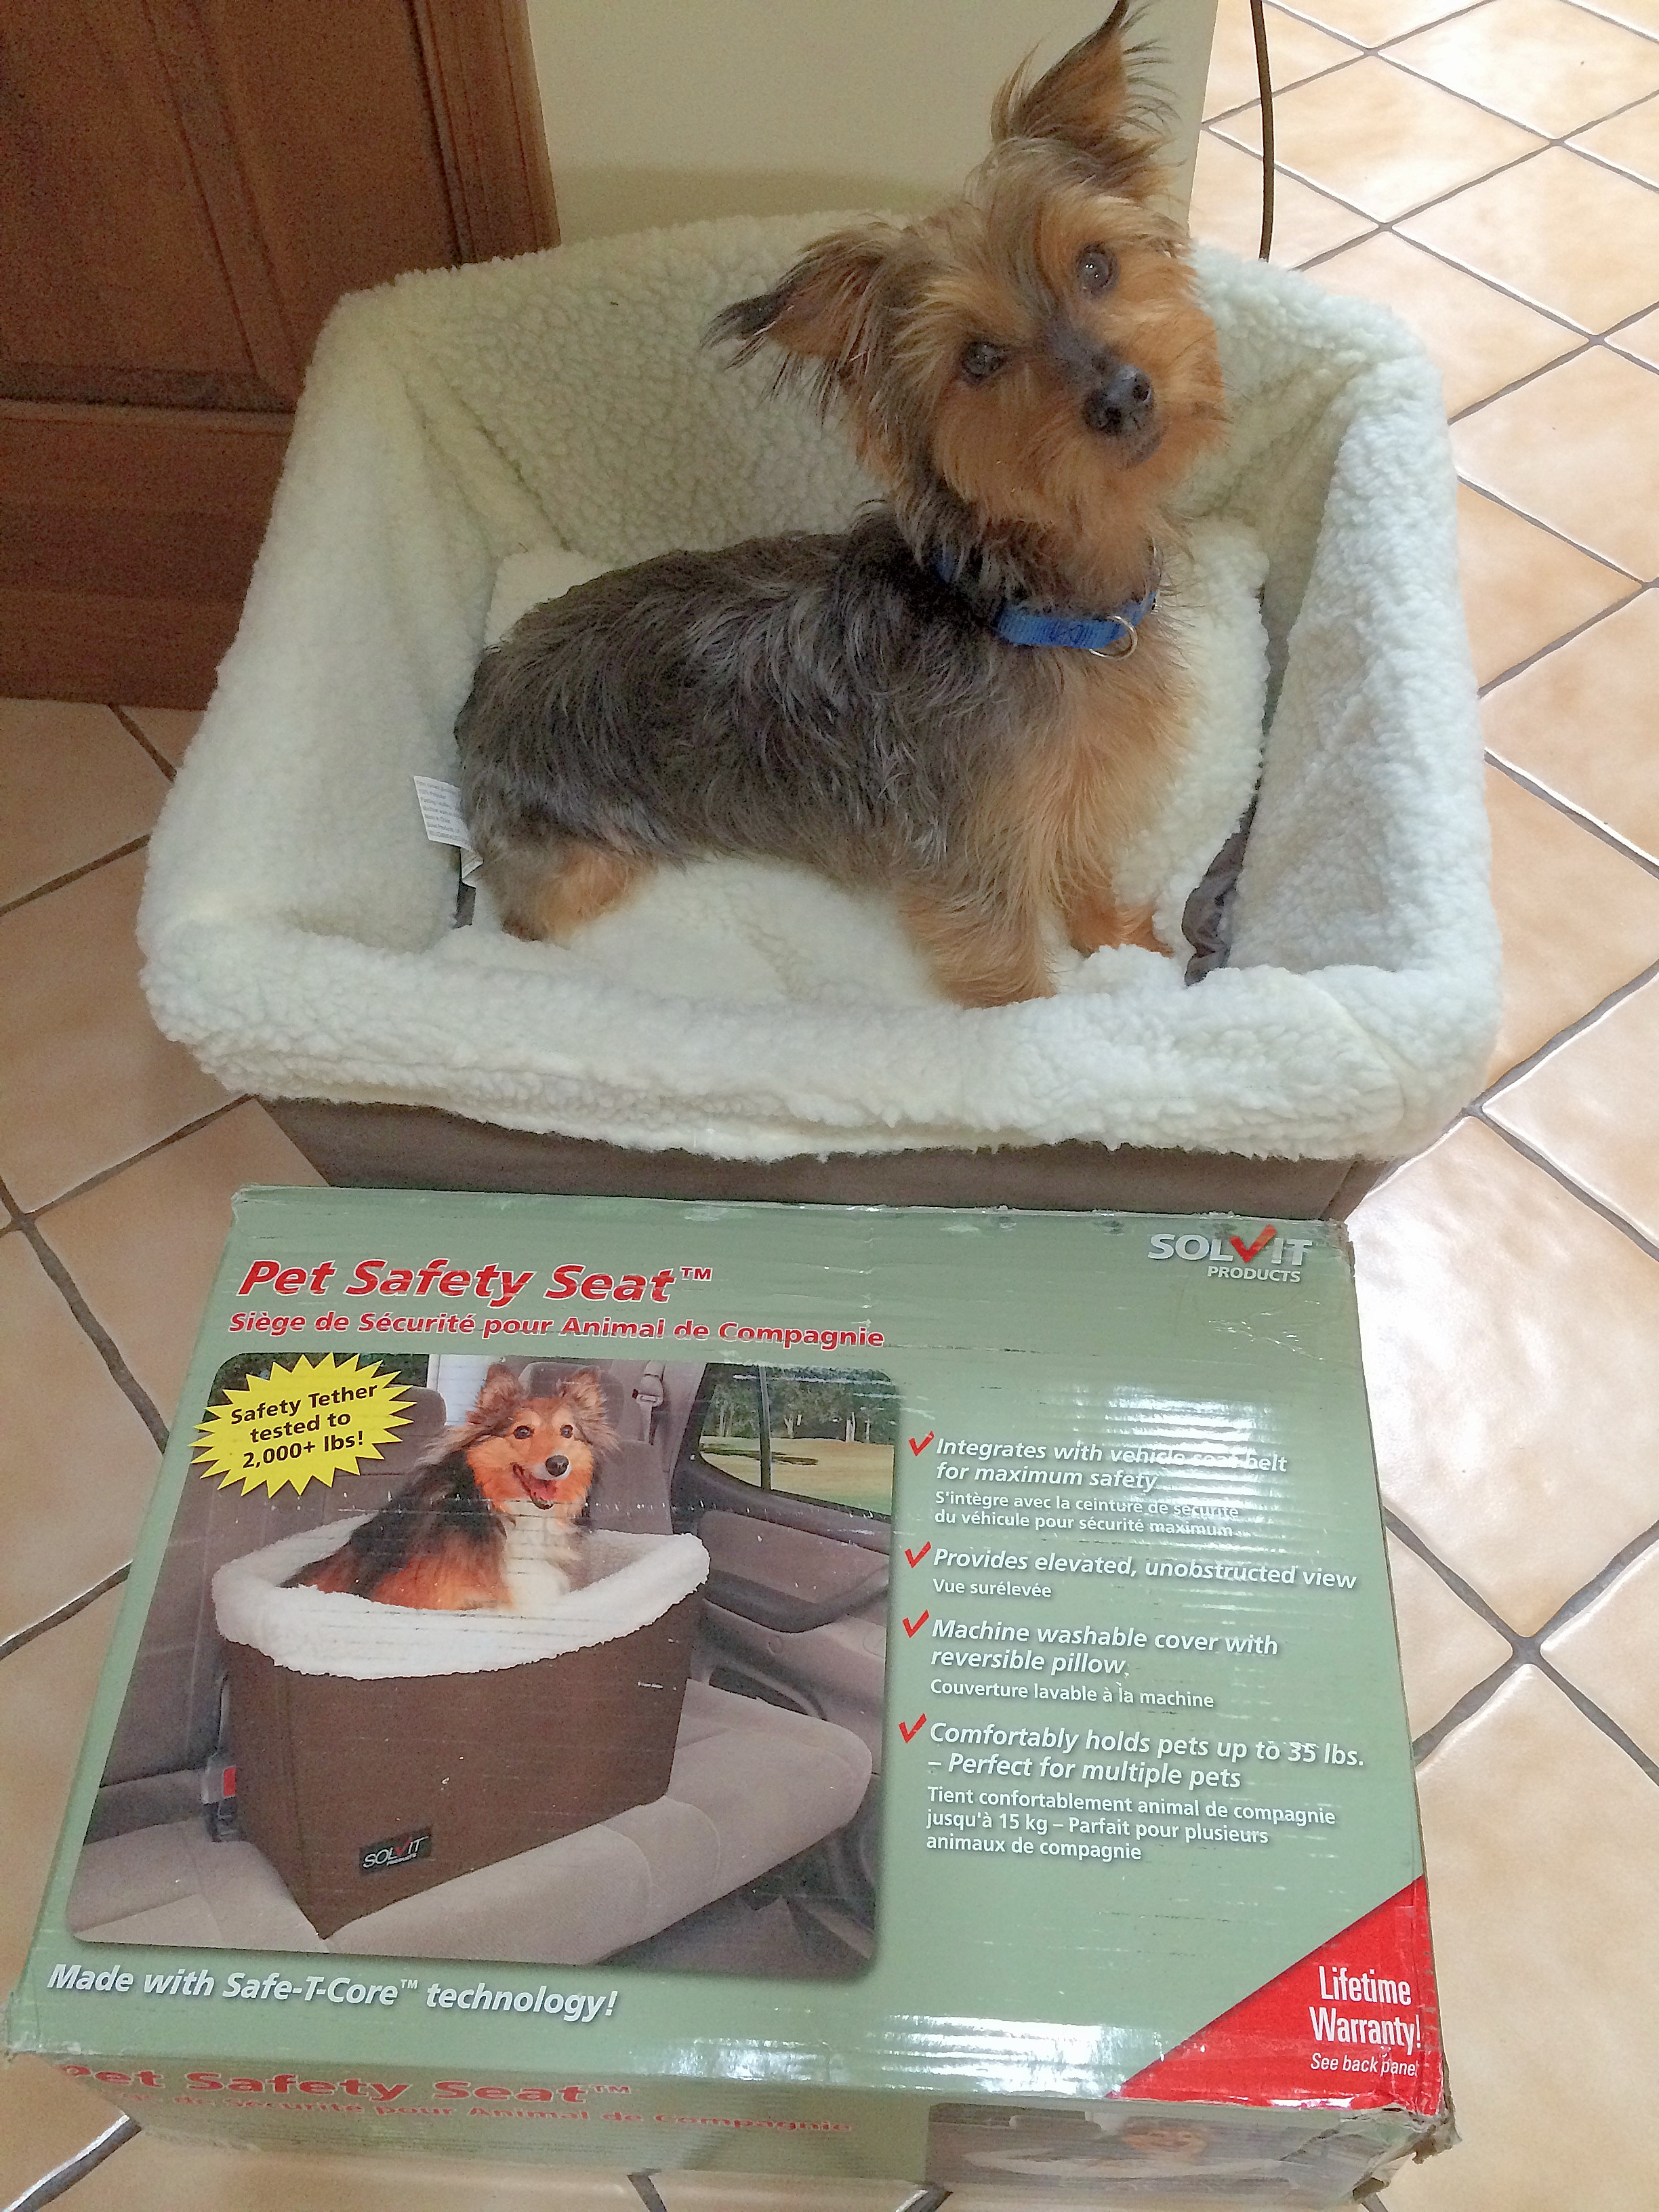 Our Winner showing off his new Pet Safety Seat from Solvit: Johnny the Dog